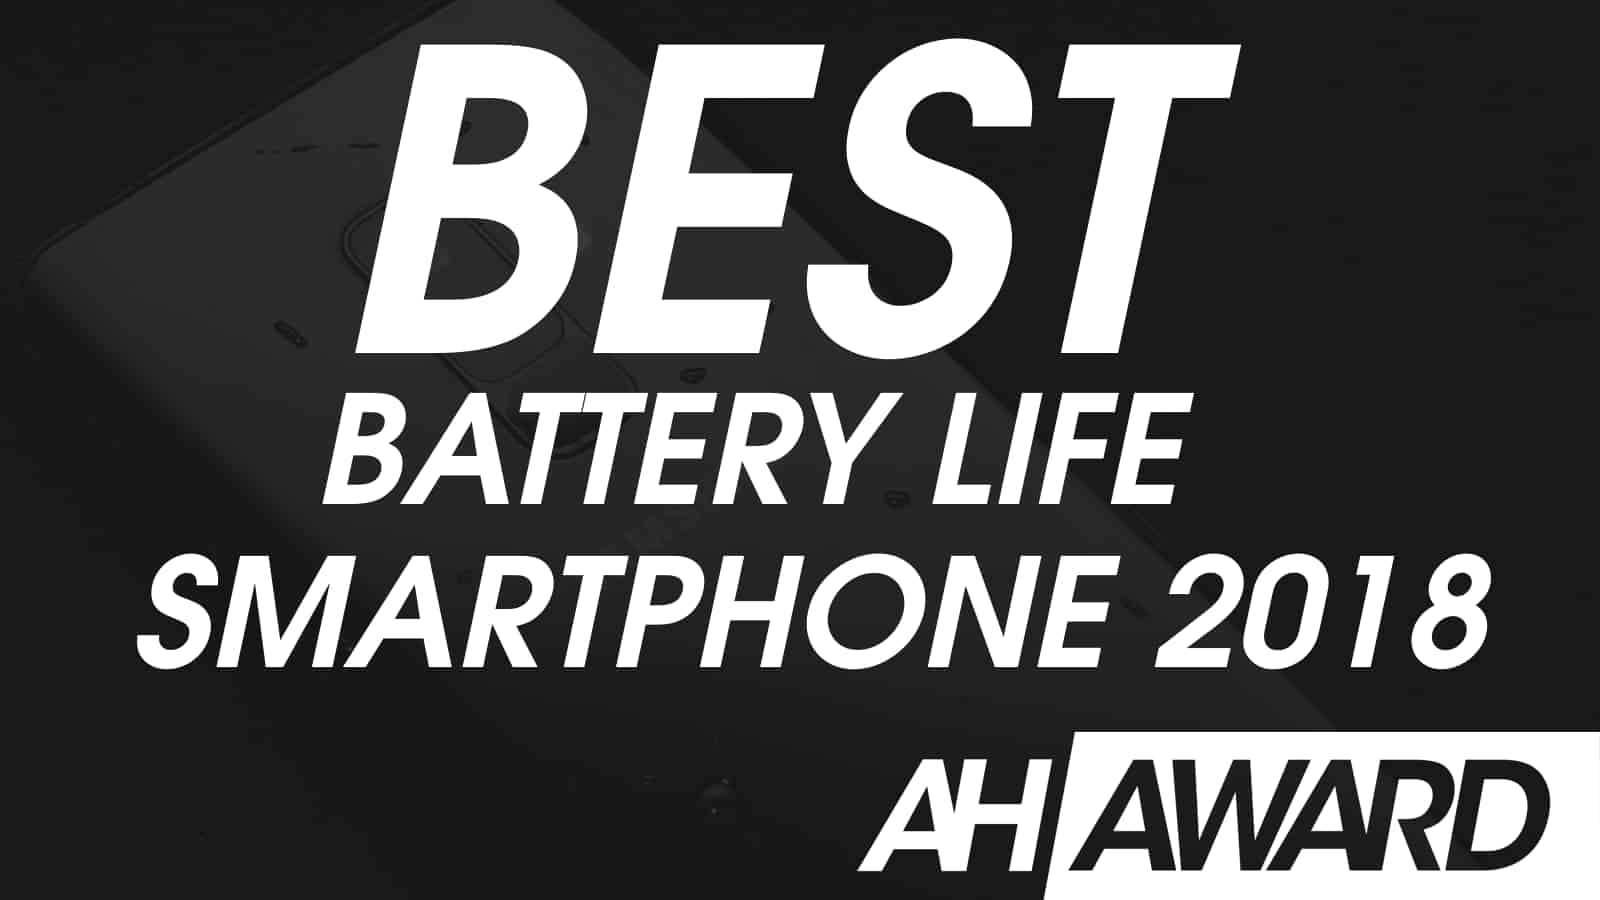 ANDROID HEADLINES BEST BATTERY LIFE SMARTPHONE 2018